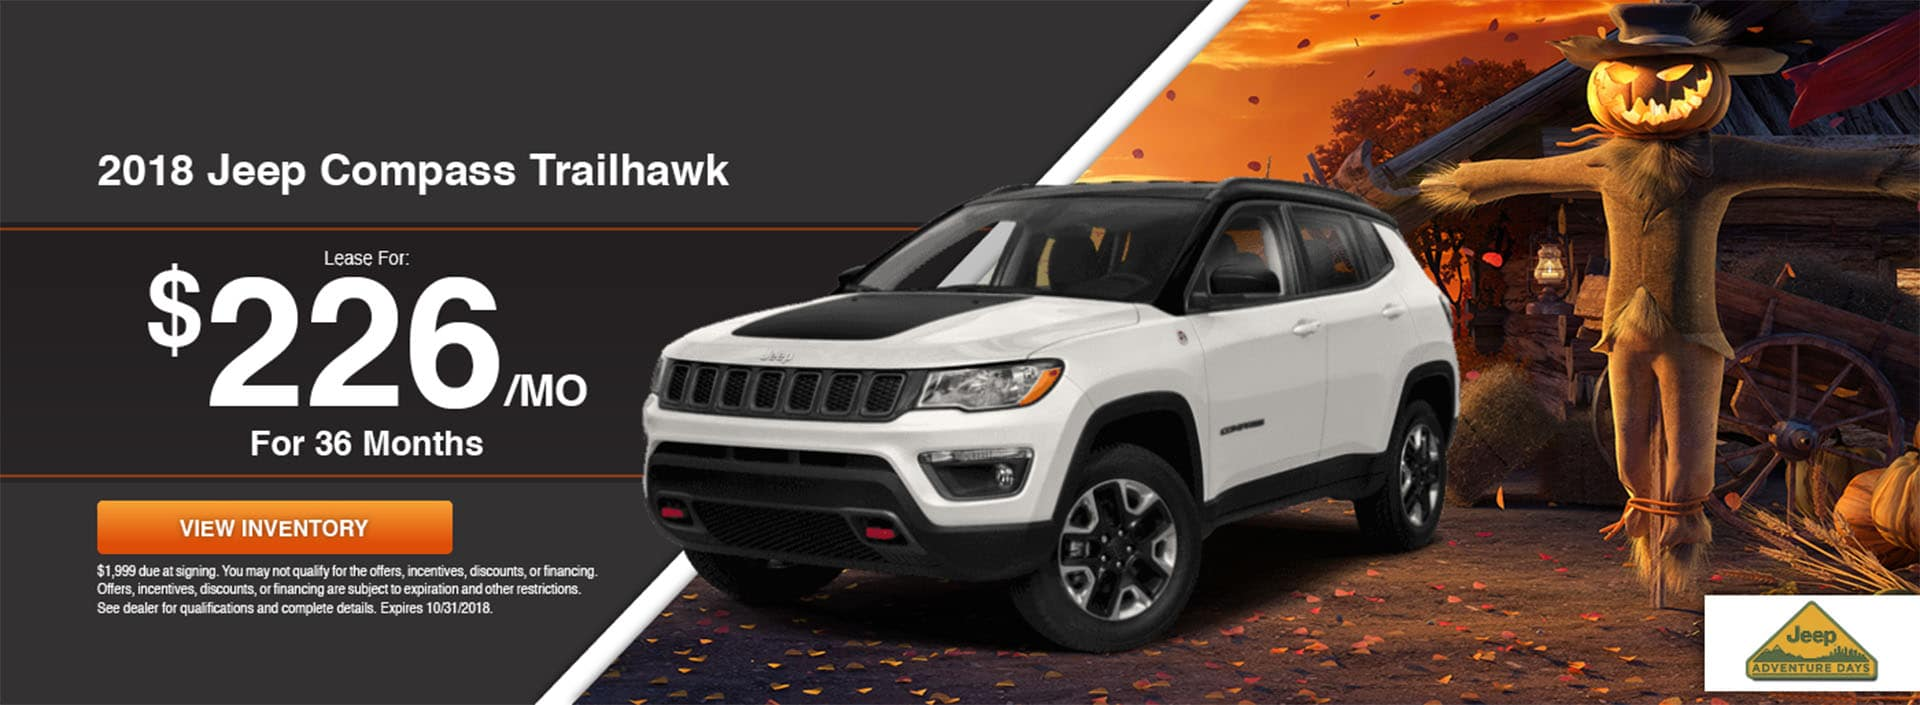 New 2018 Jeep Compass for Sale in Waseca, MN